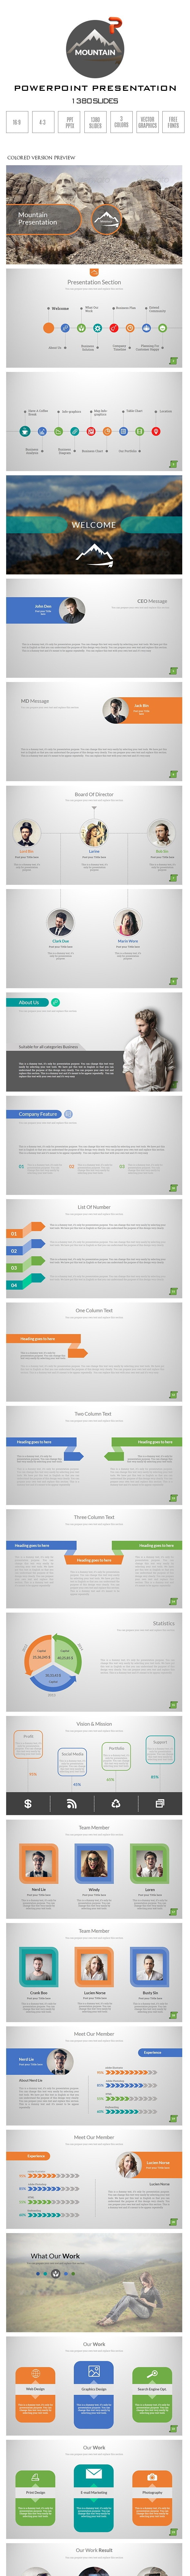 Mountain PowerPoint Presentation Template - Business PowerPoint Templates